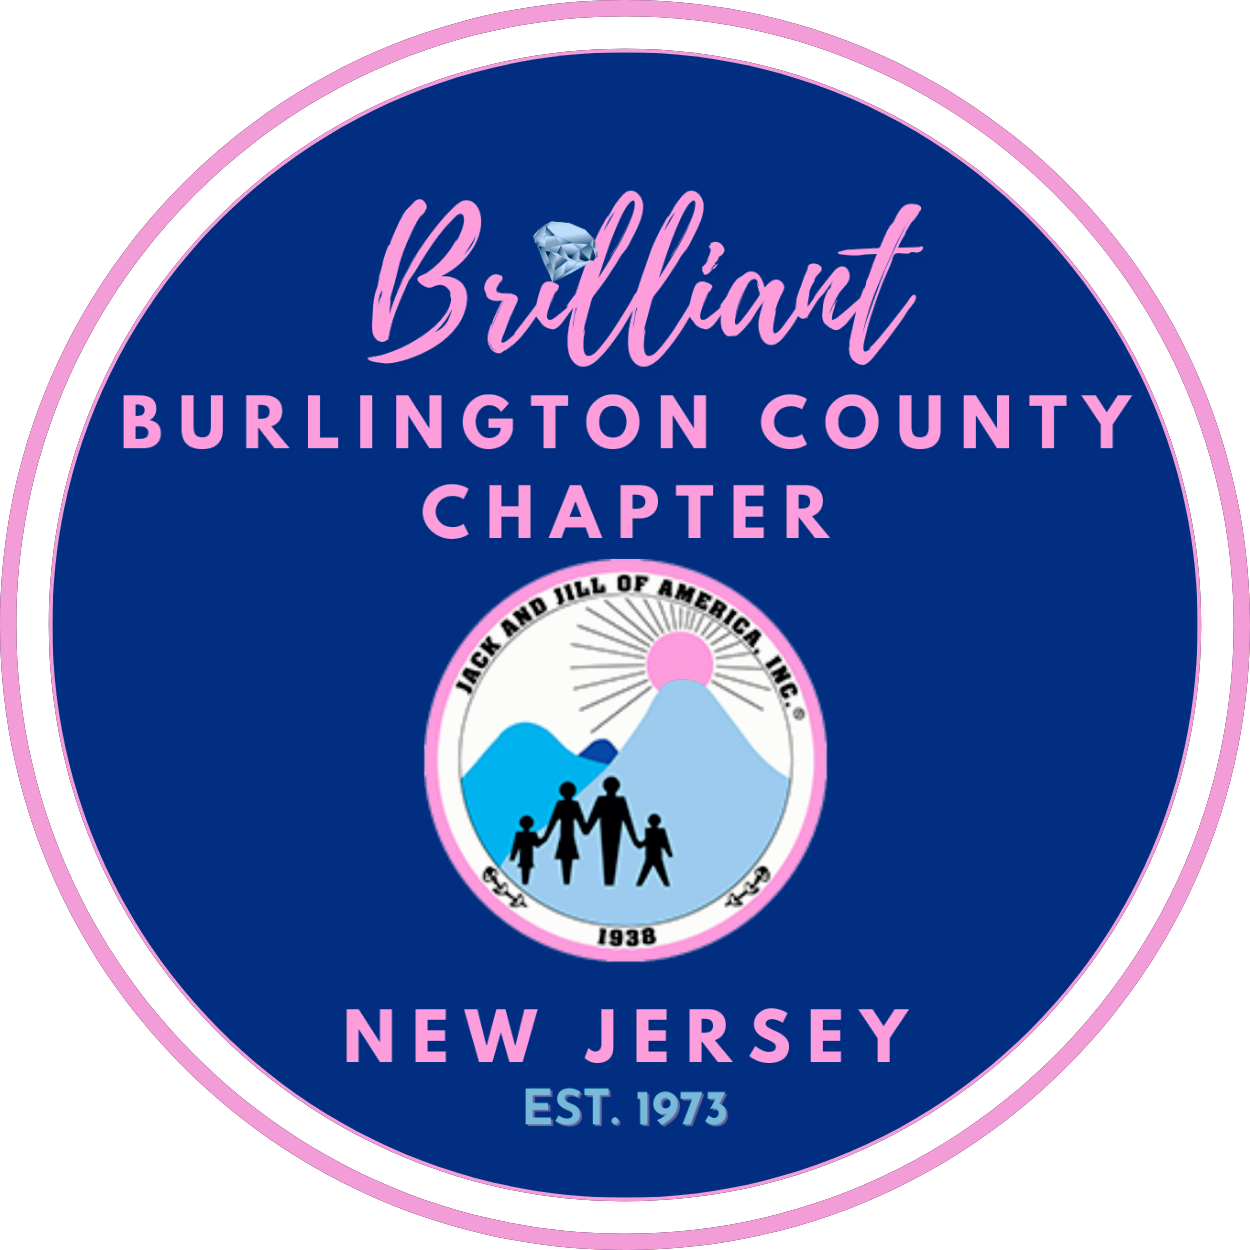 Jack and Jill Burlington County Chapter